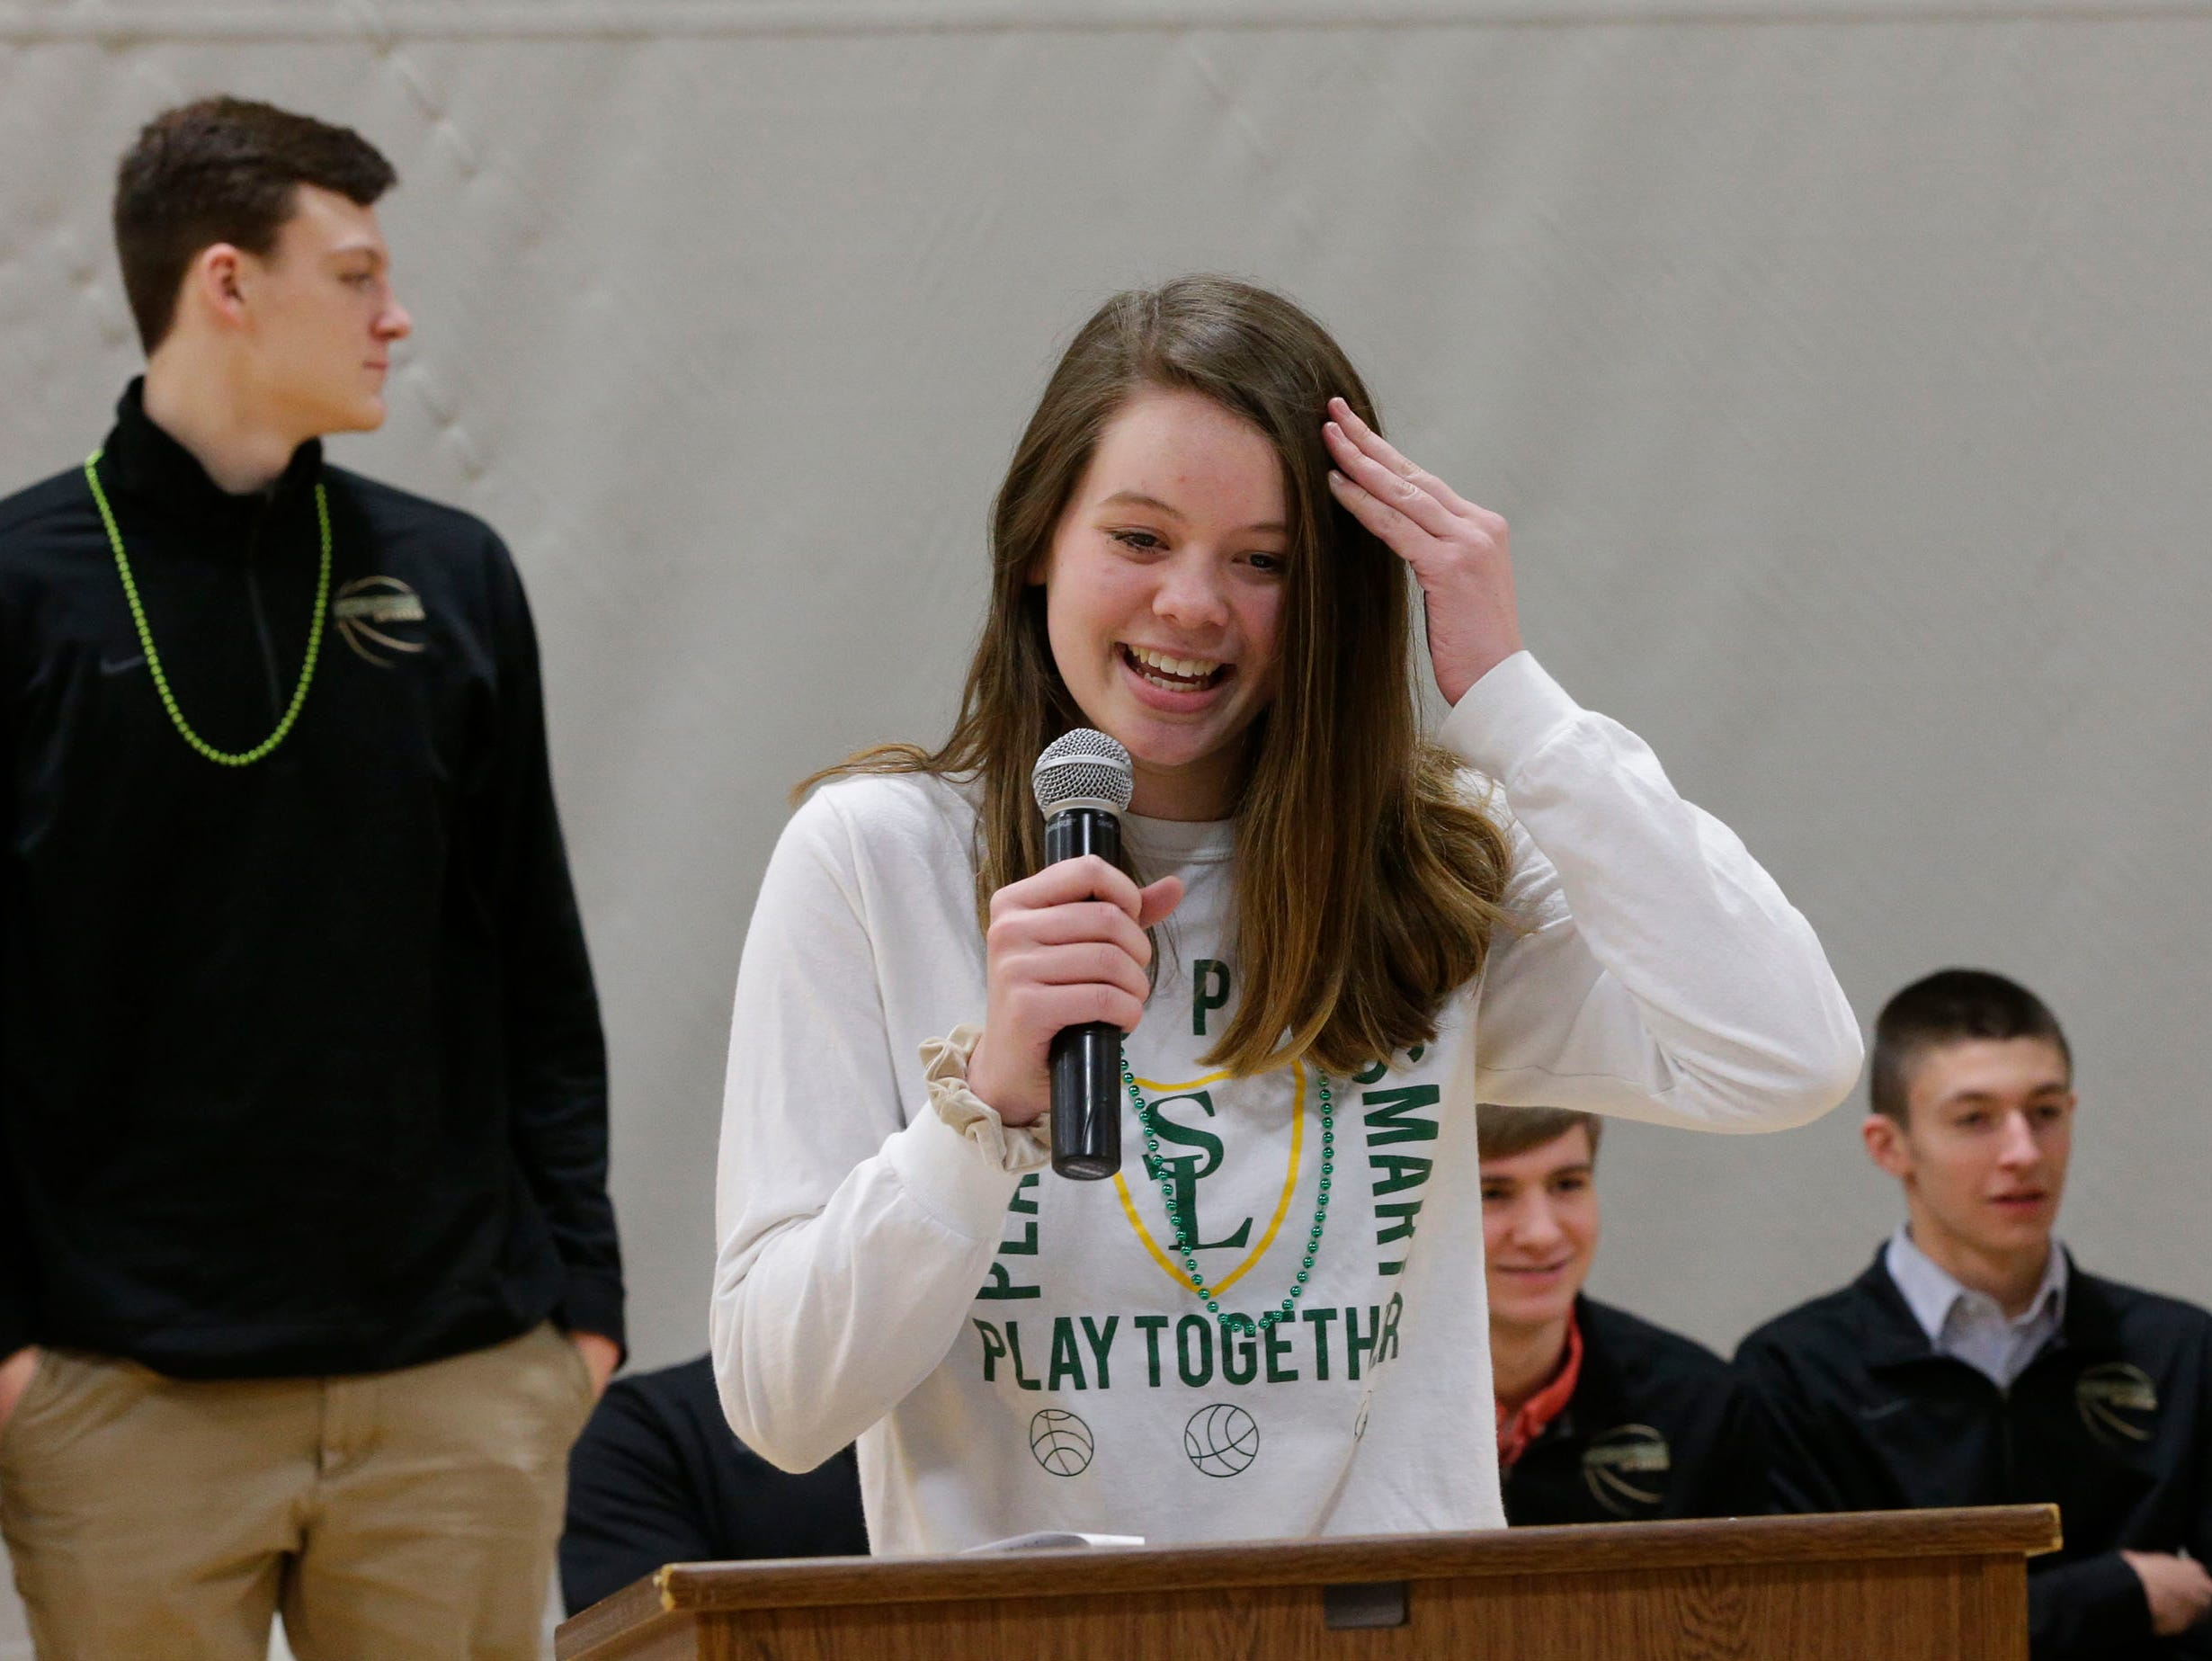 Maddy Pfannkuch reacts to not being able to name all the players on the Sheboygan Lutheran basketball team, Thursday, March 14, 2109, in Sheboygan, Wis. The team travels to Madison for WIAA state basketball competition.